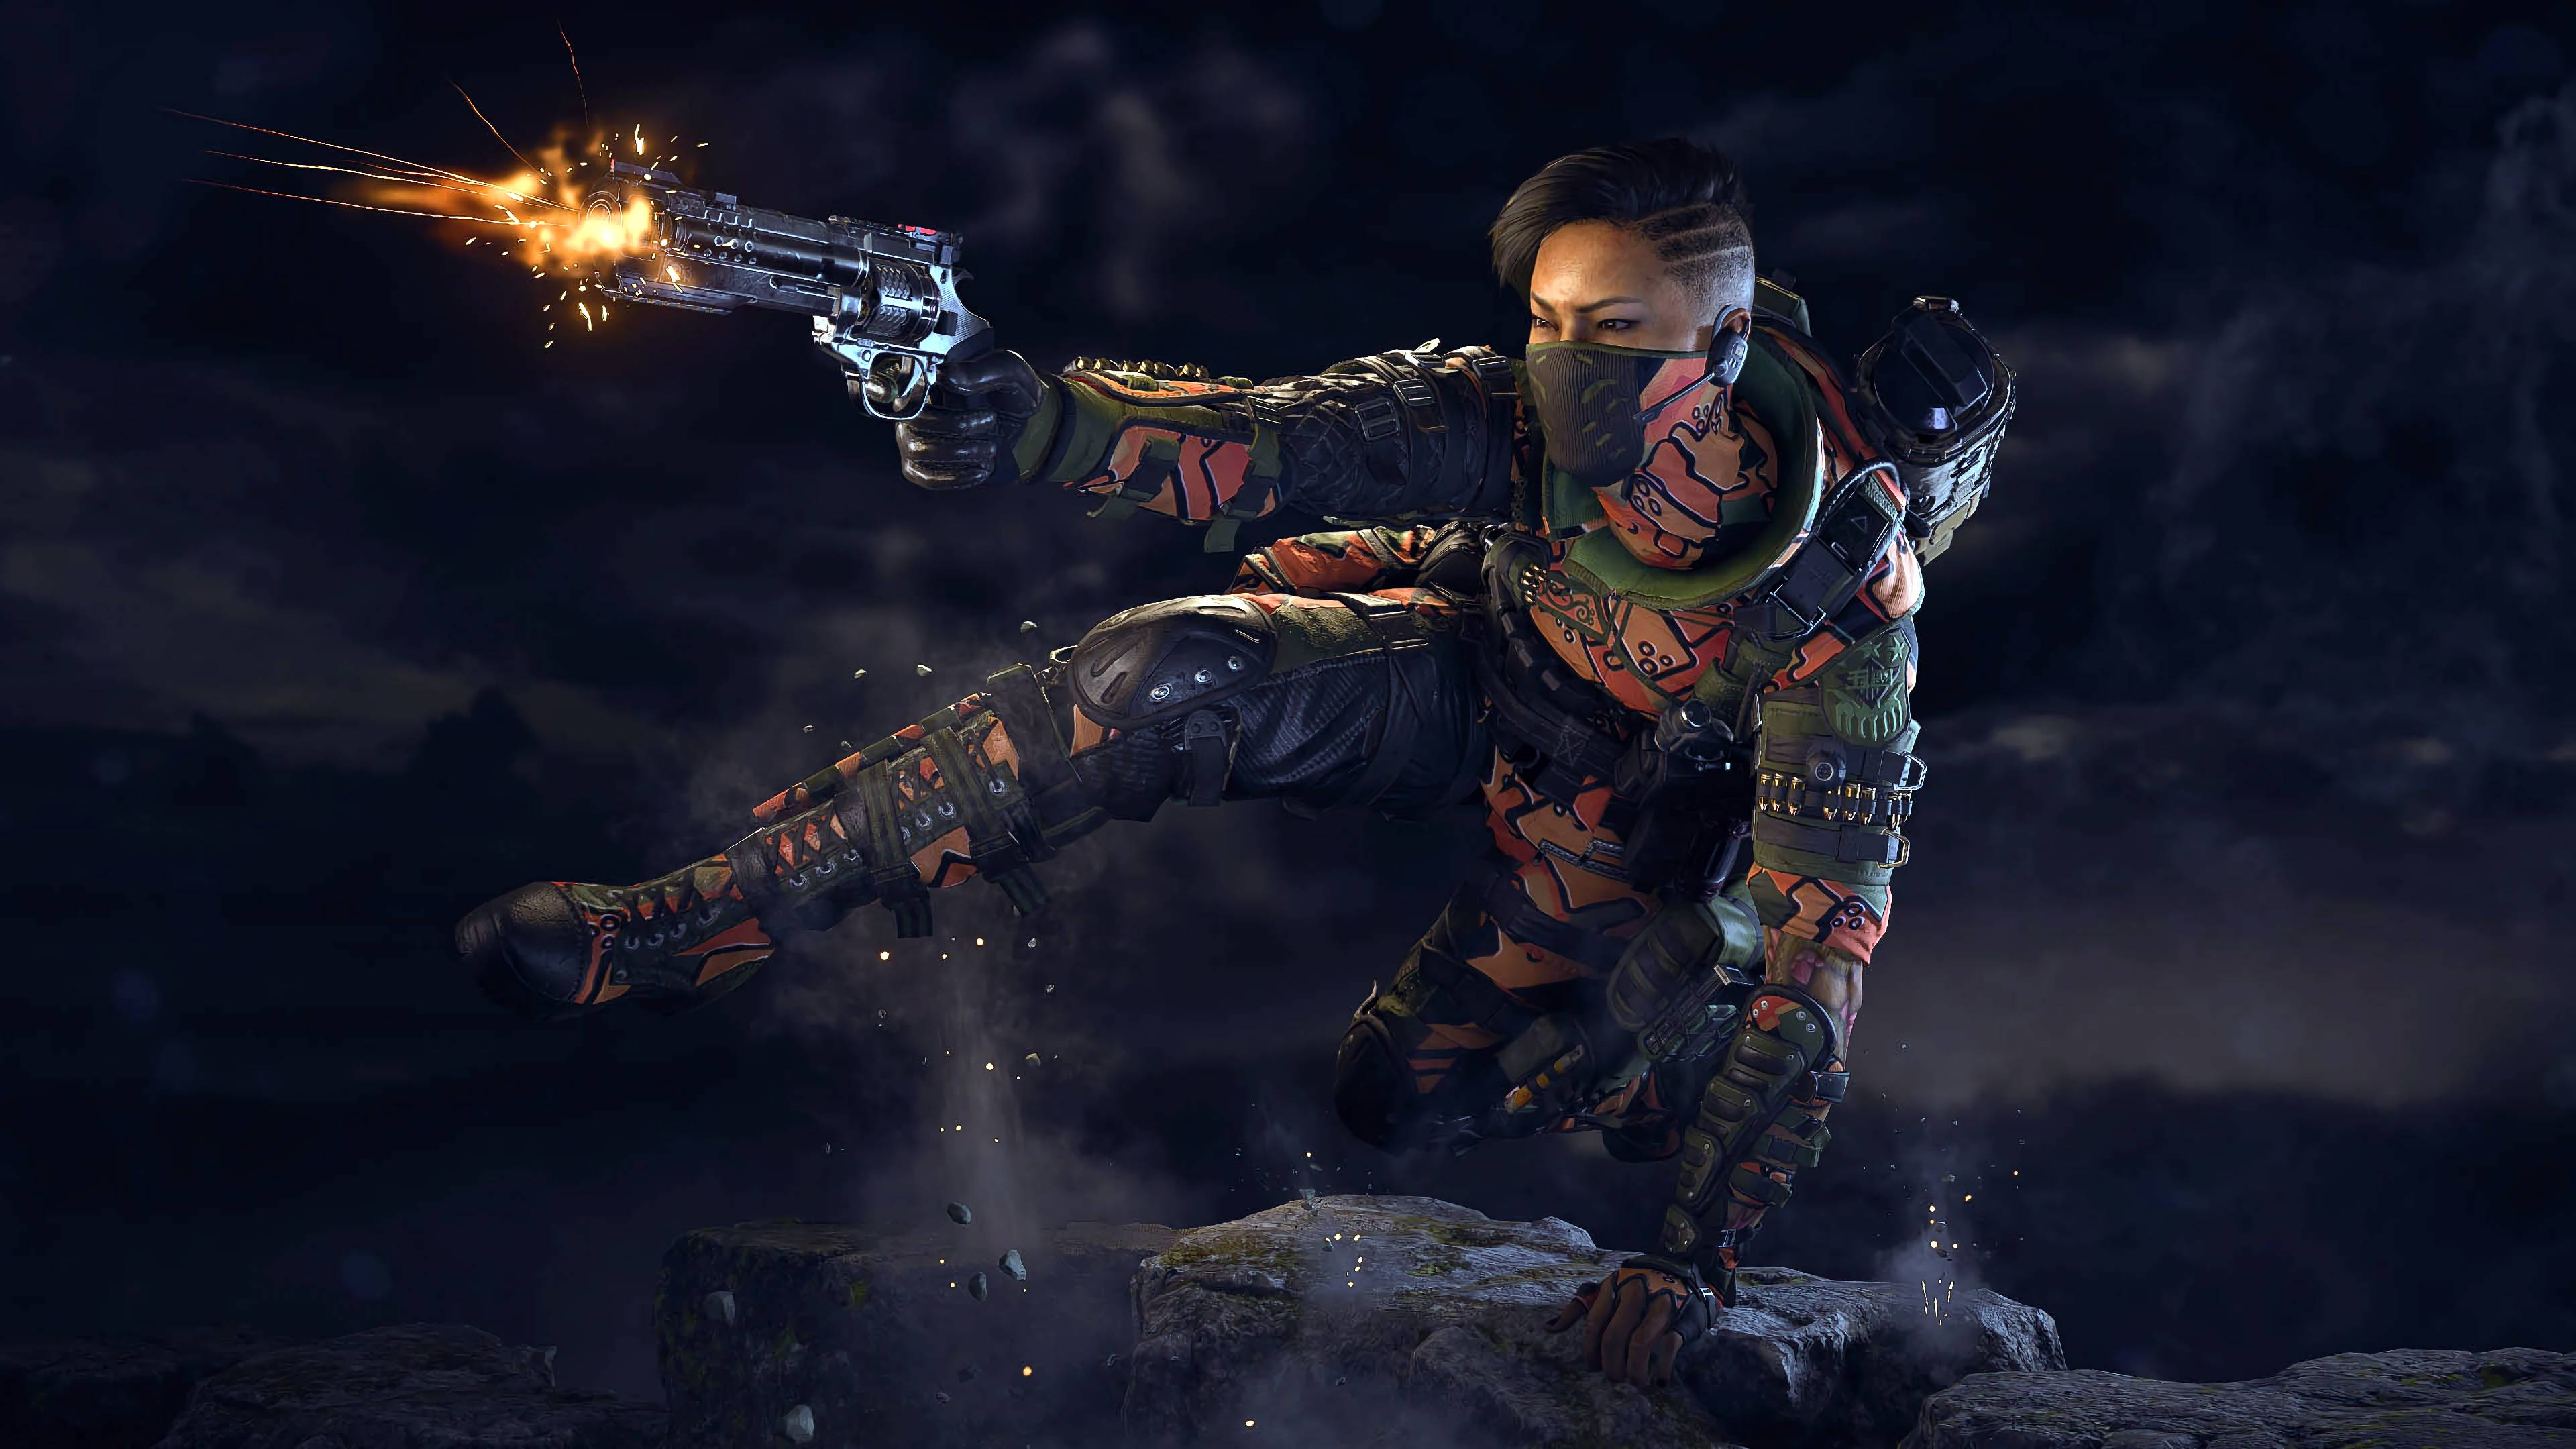 Call of Duty Black Ops 4 Wallpapers - Top Free Call of ...